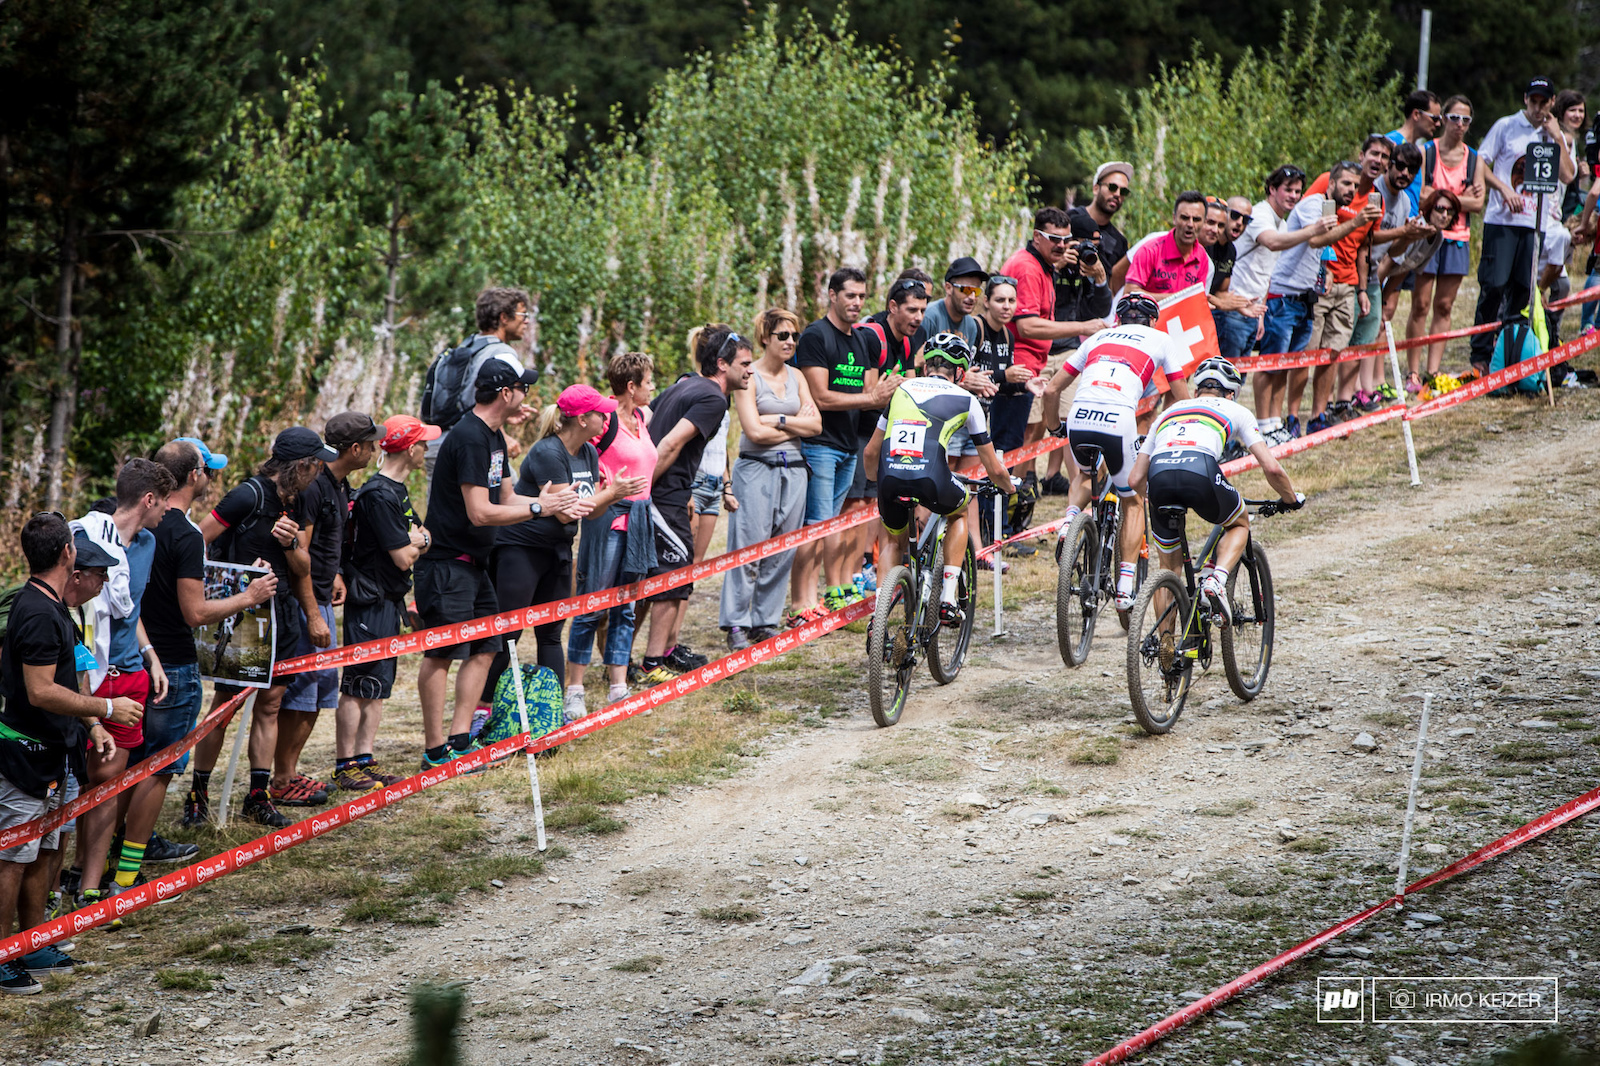 Ondrej Cink gets caught by Julien Absalon and Nino Schurter. Absalon would power away moments after.